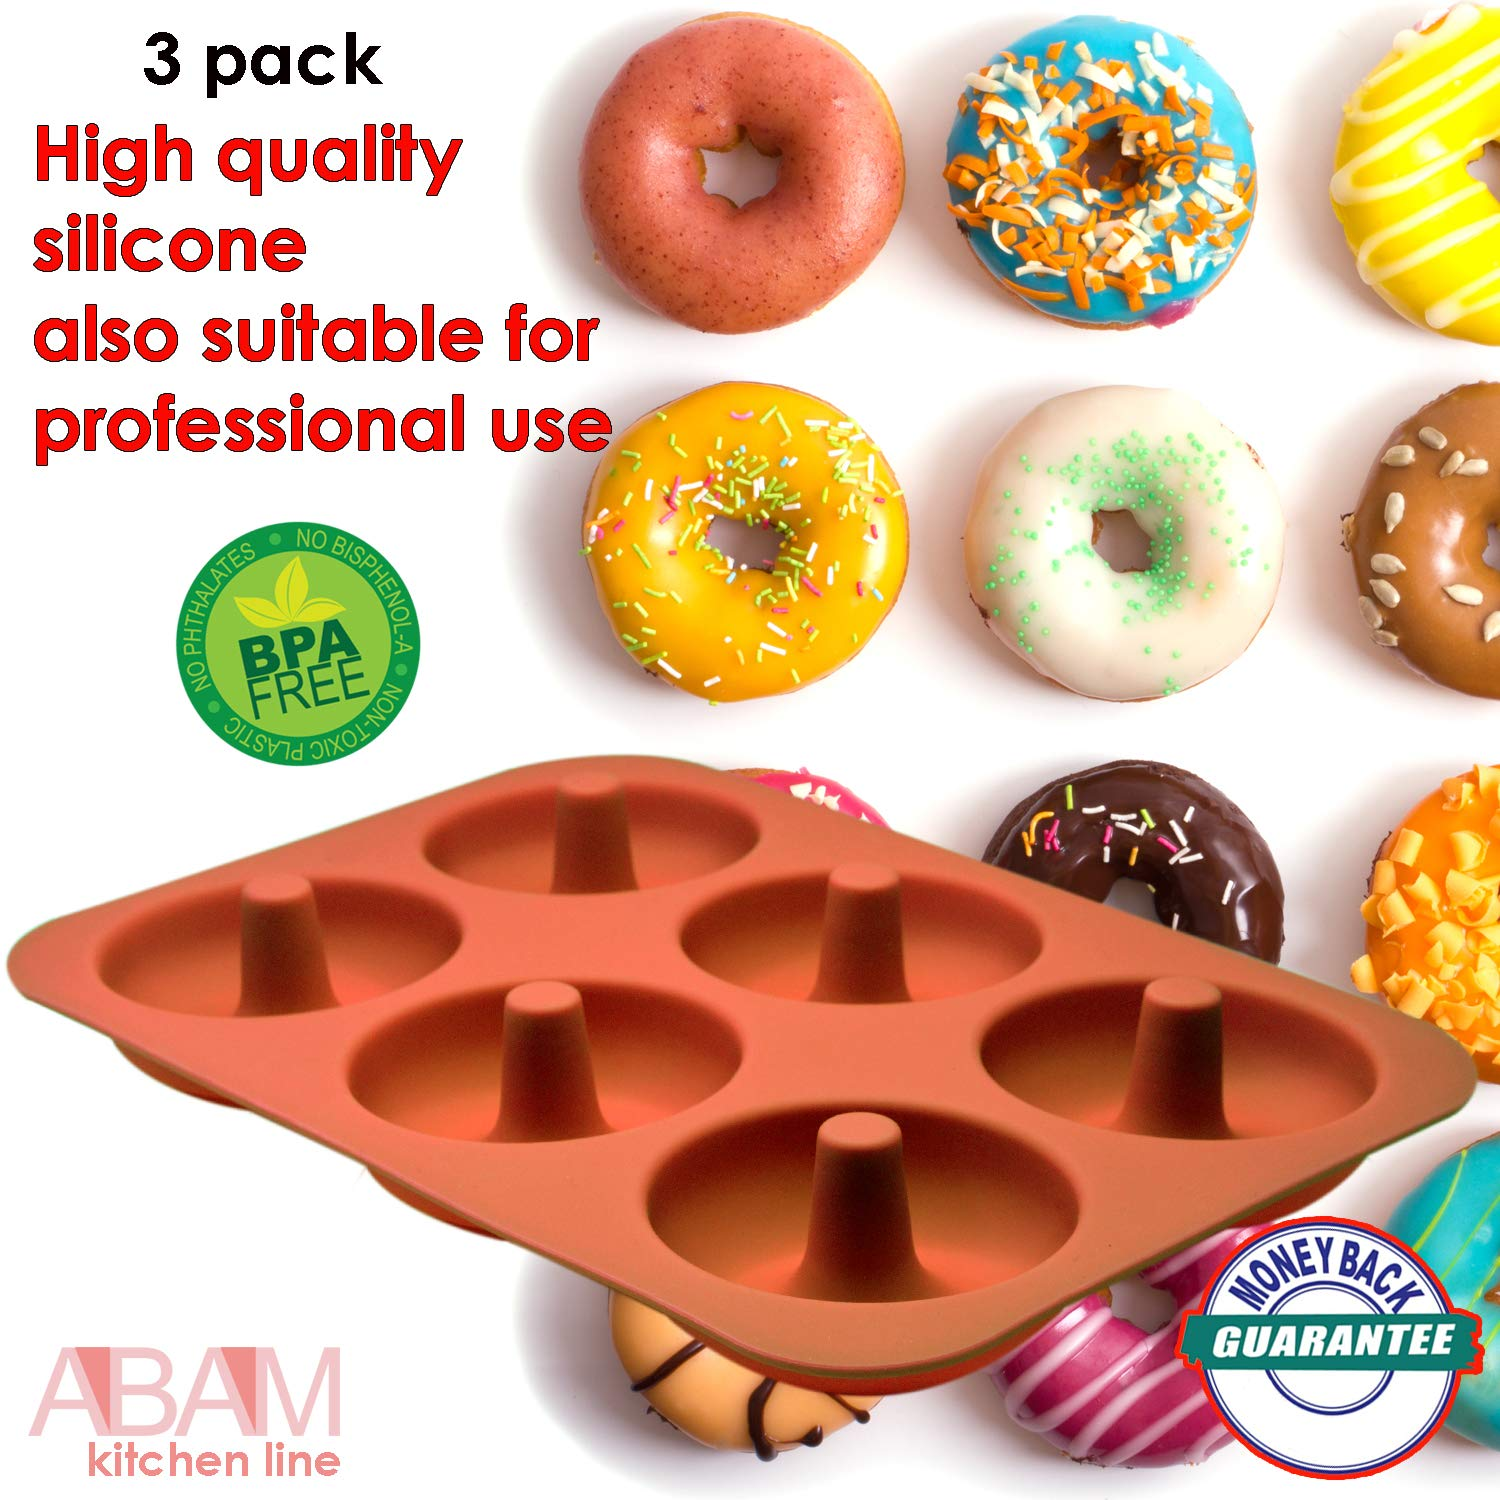 Professional Premium Silicone Donut Pan 3-Pack - Non Stick Doughnut Pans for Baking with 6 Slots - Reusable Bagel Mold Tray for Prolonged Use - Microwave, Freezer & Dishwasher Safe Silicon Molds